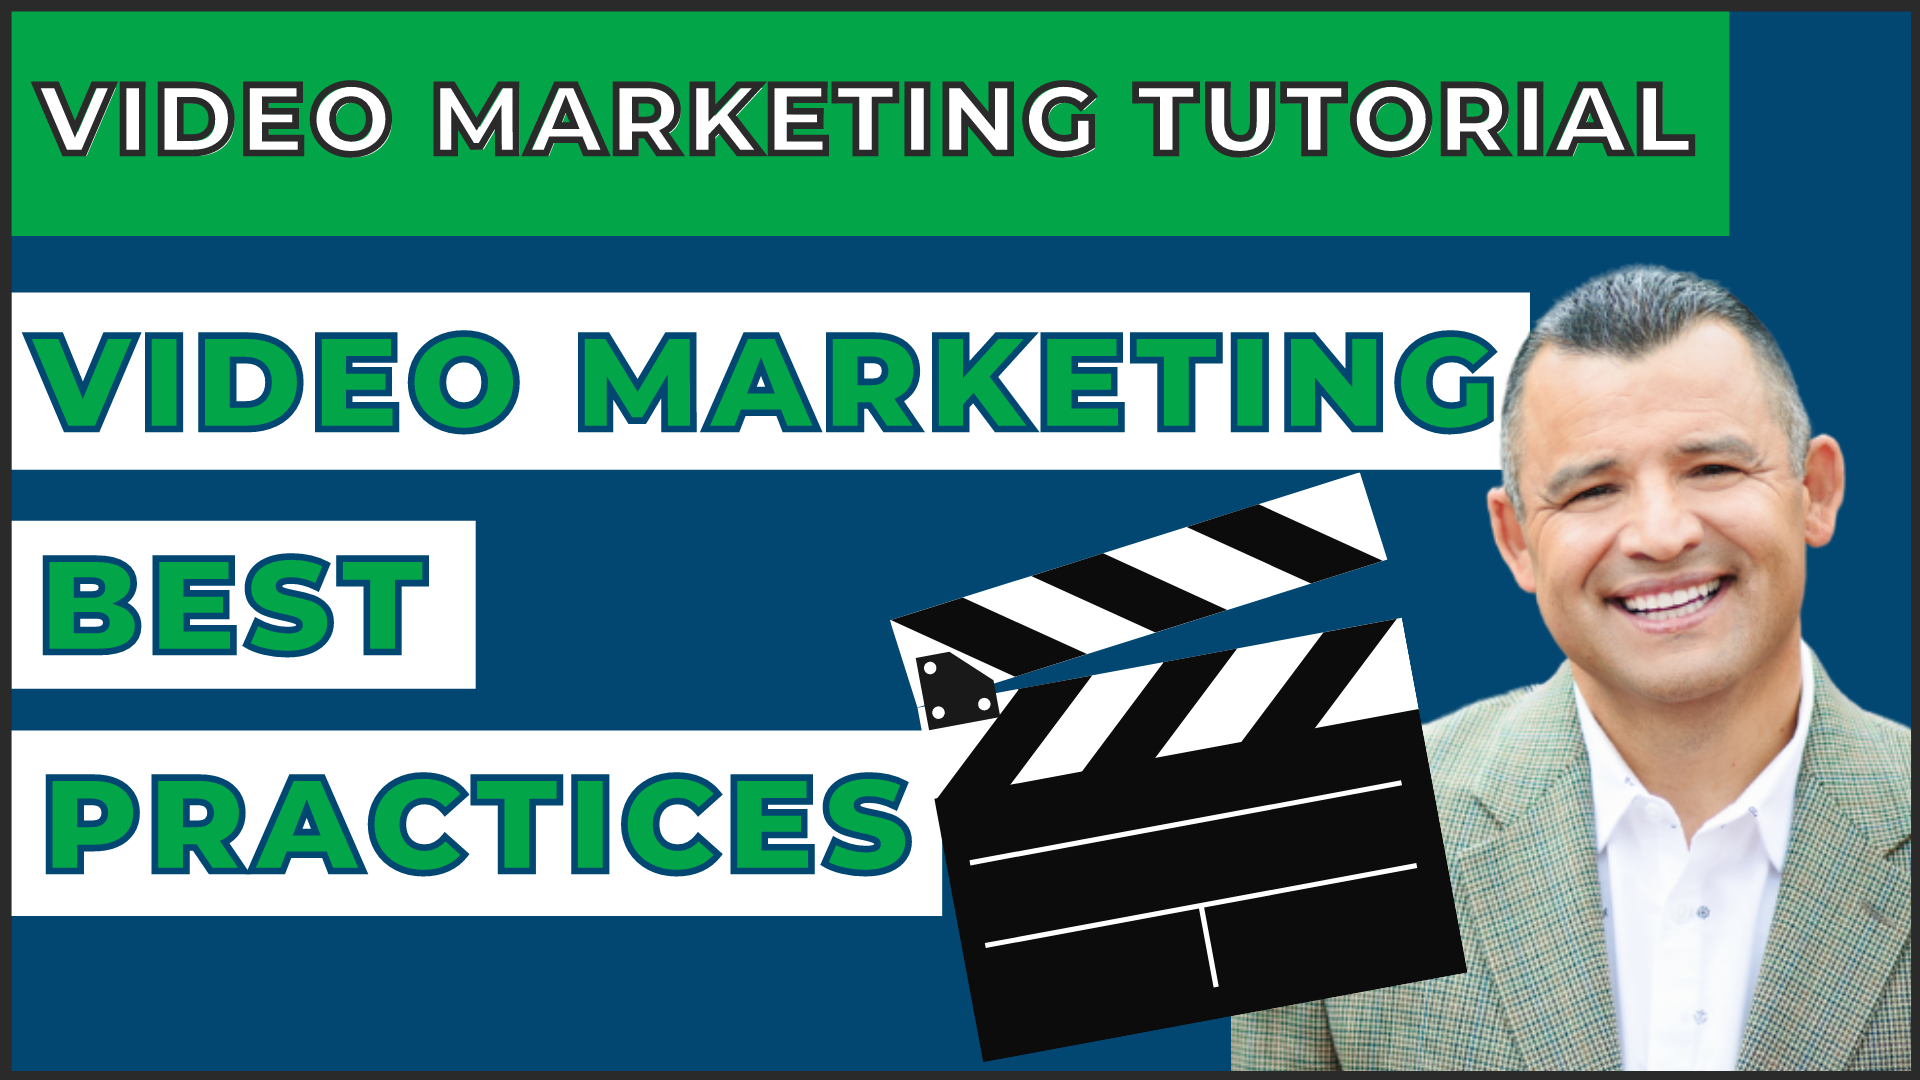 Why Video Marketing Is Important Best Practices For Your Business